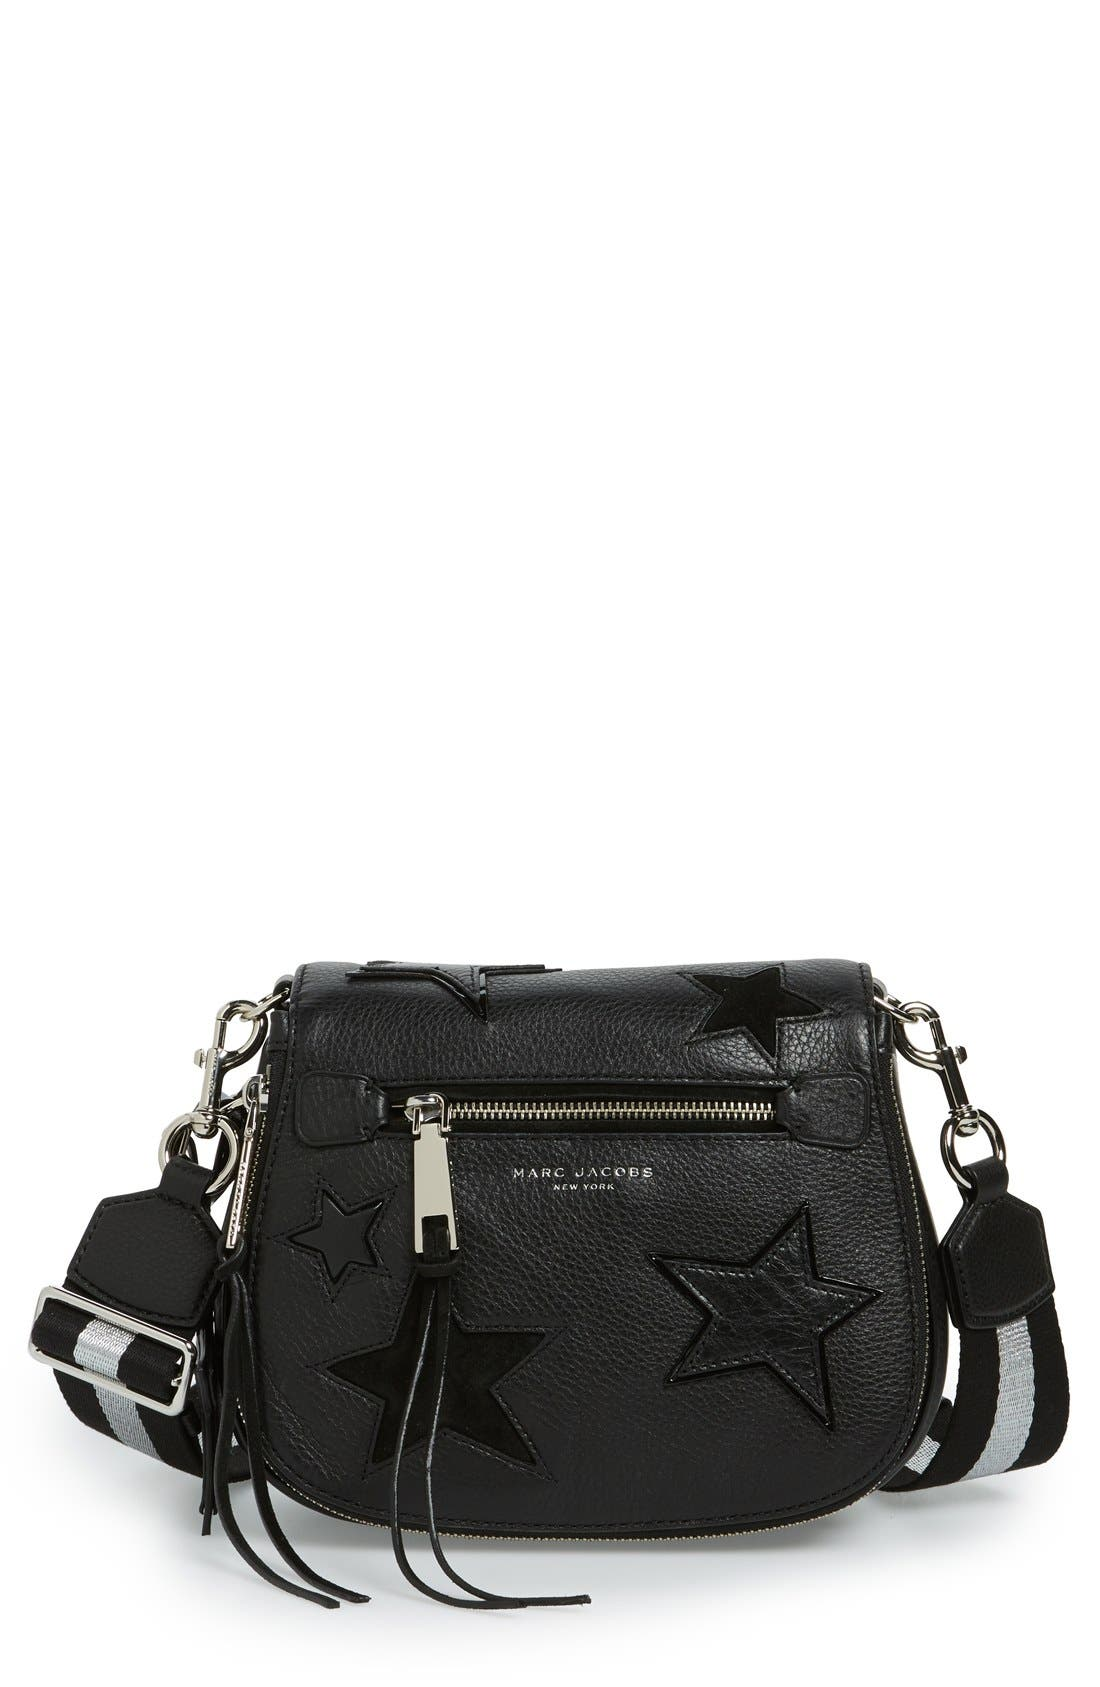 MARC JACOBS,                             'Star' Leather Crossbody Bag,                             Main thumbnail 1, color,                             002